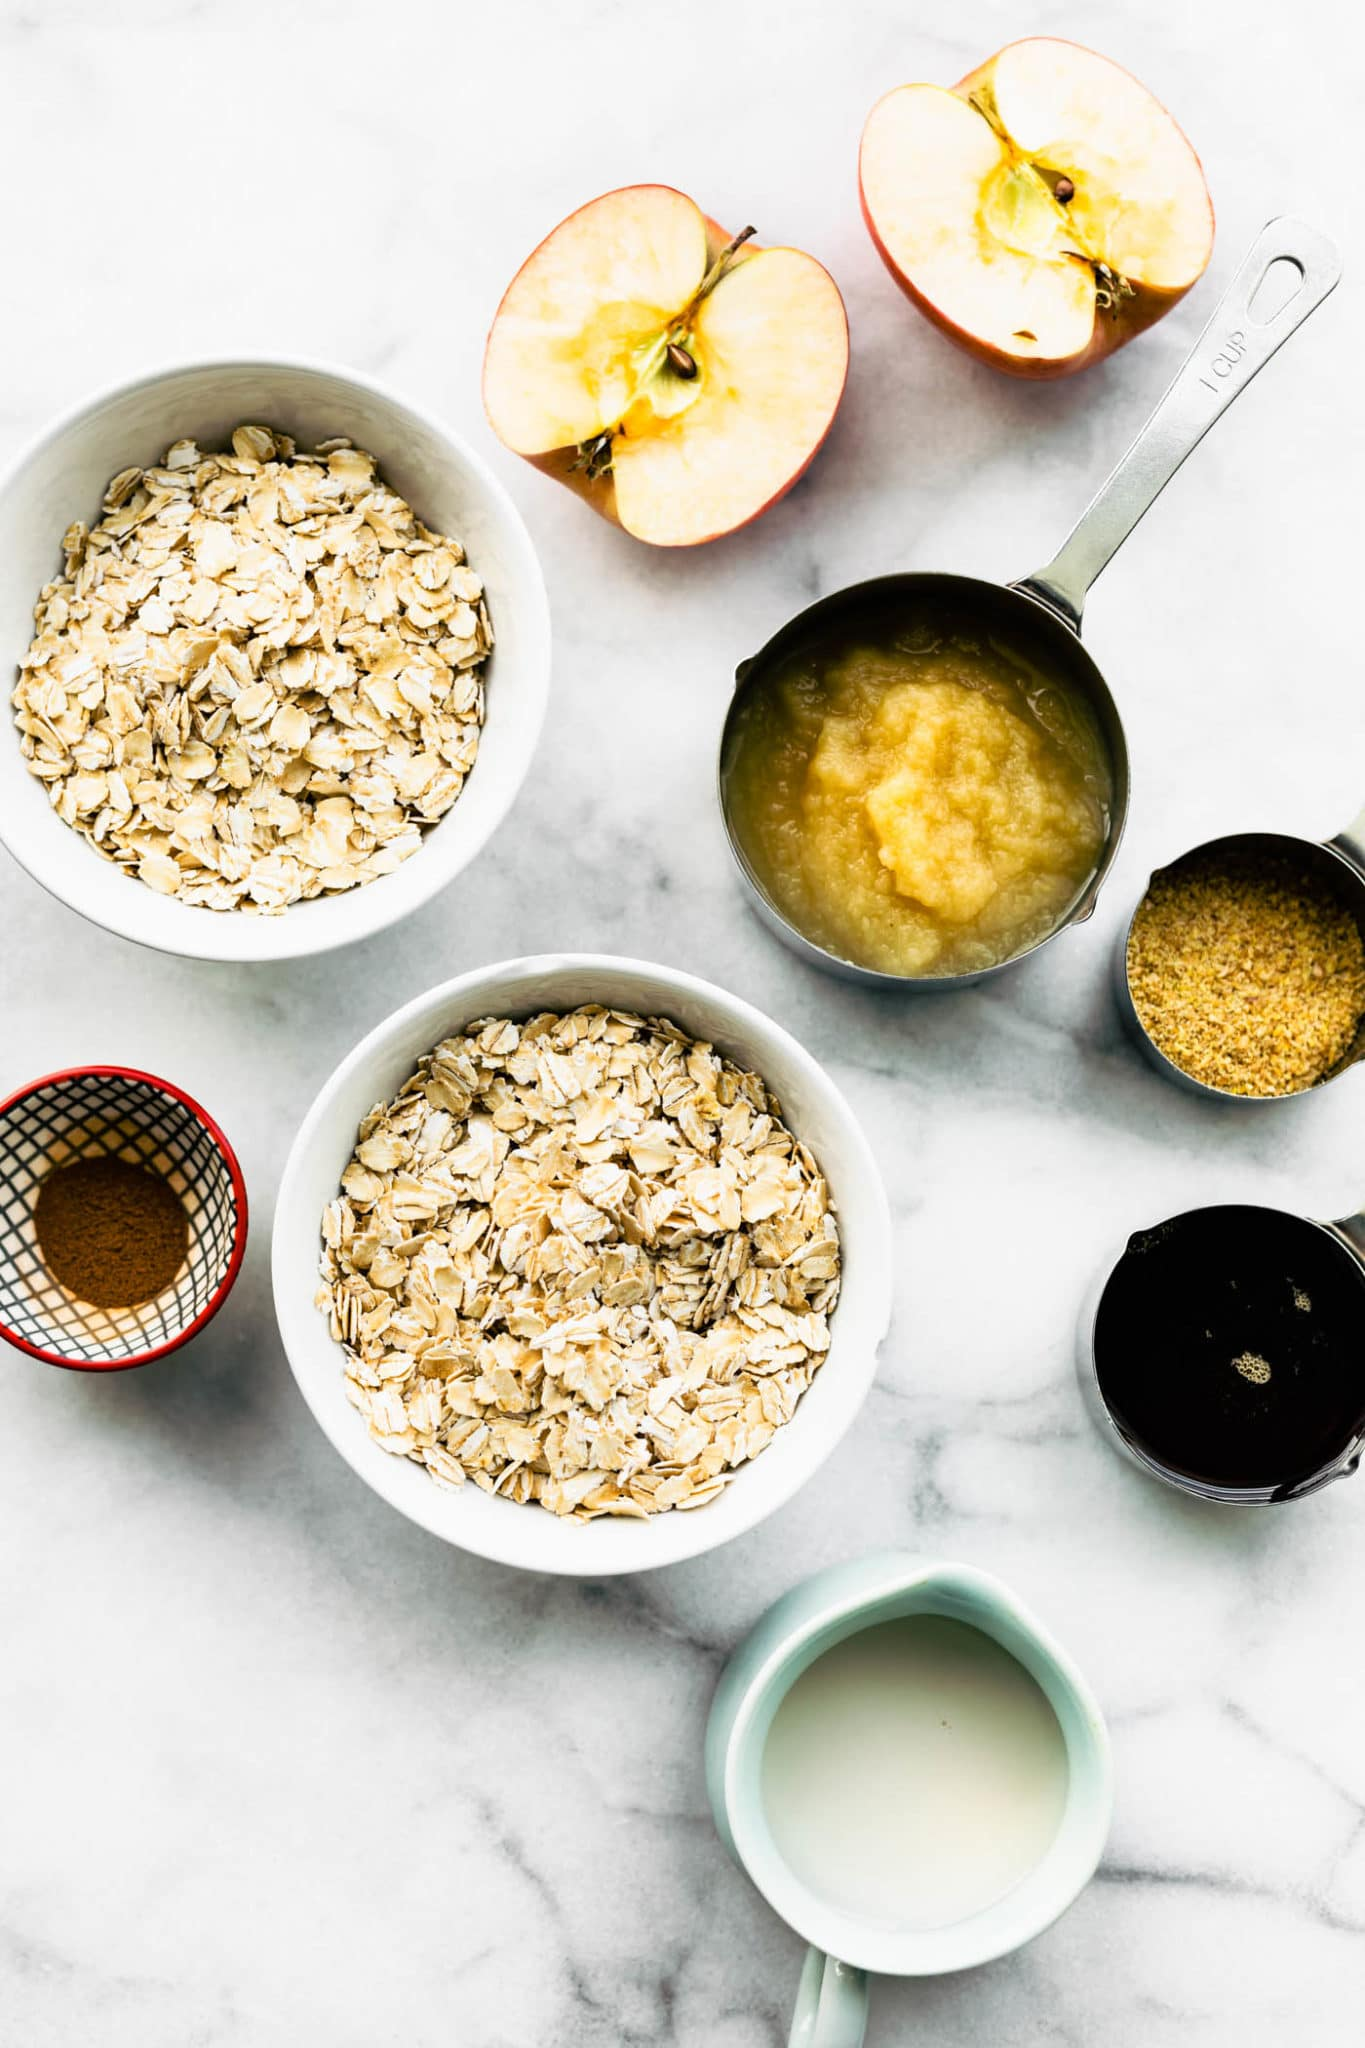 ingredients for gluten free apple oatmeal muffins on a counter